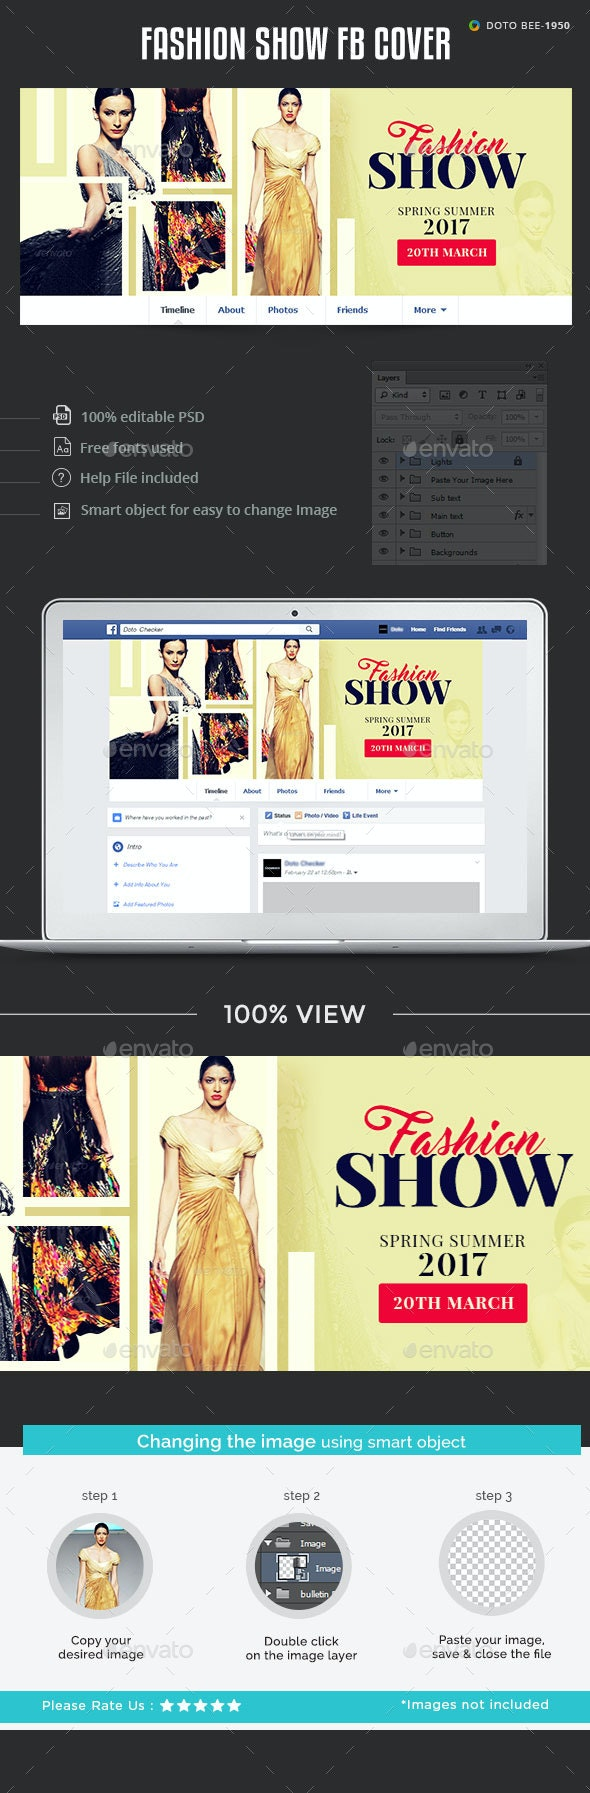 Fashion Show Facebook Cover - Facebook Timeline Covers Social Media